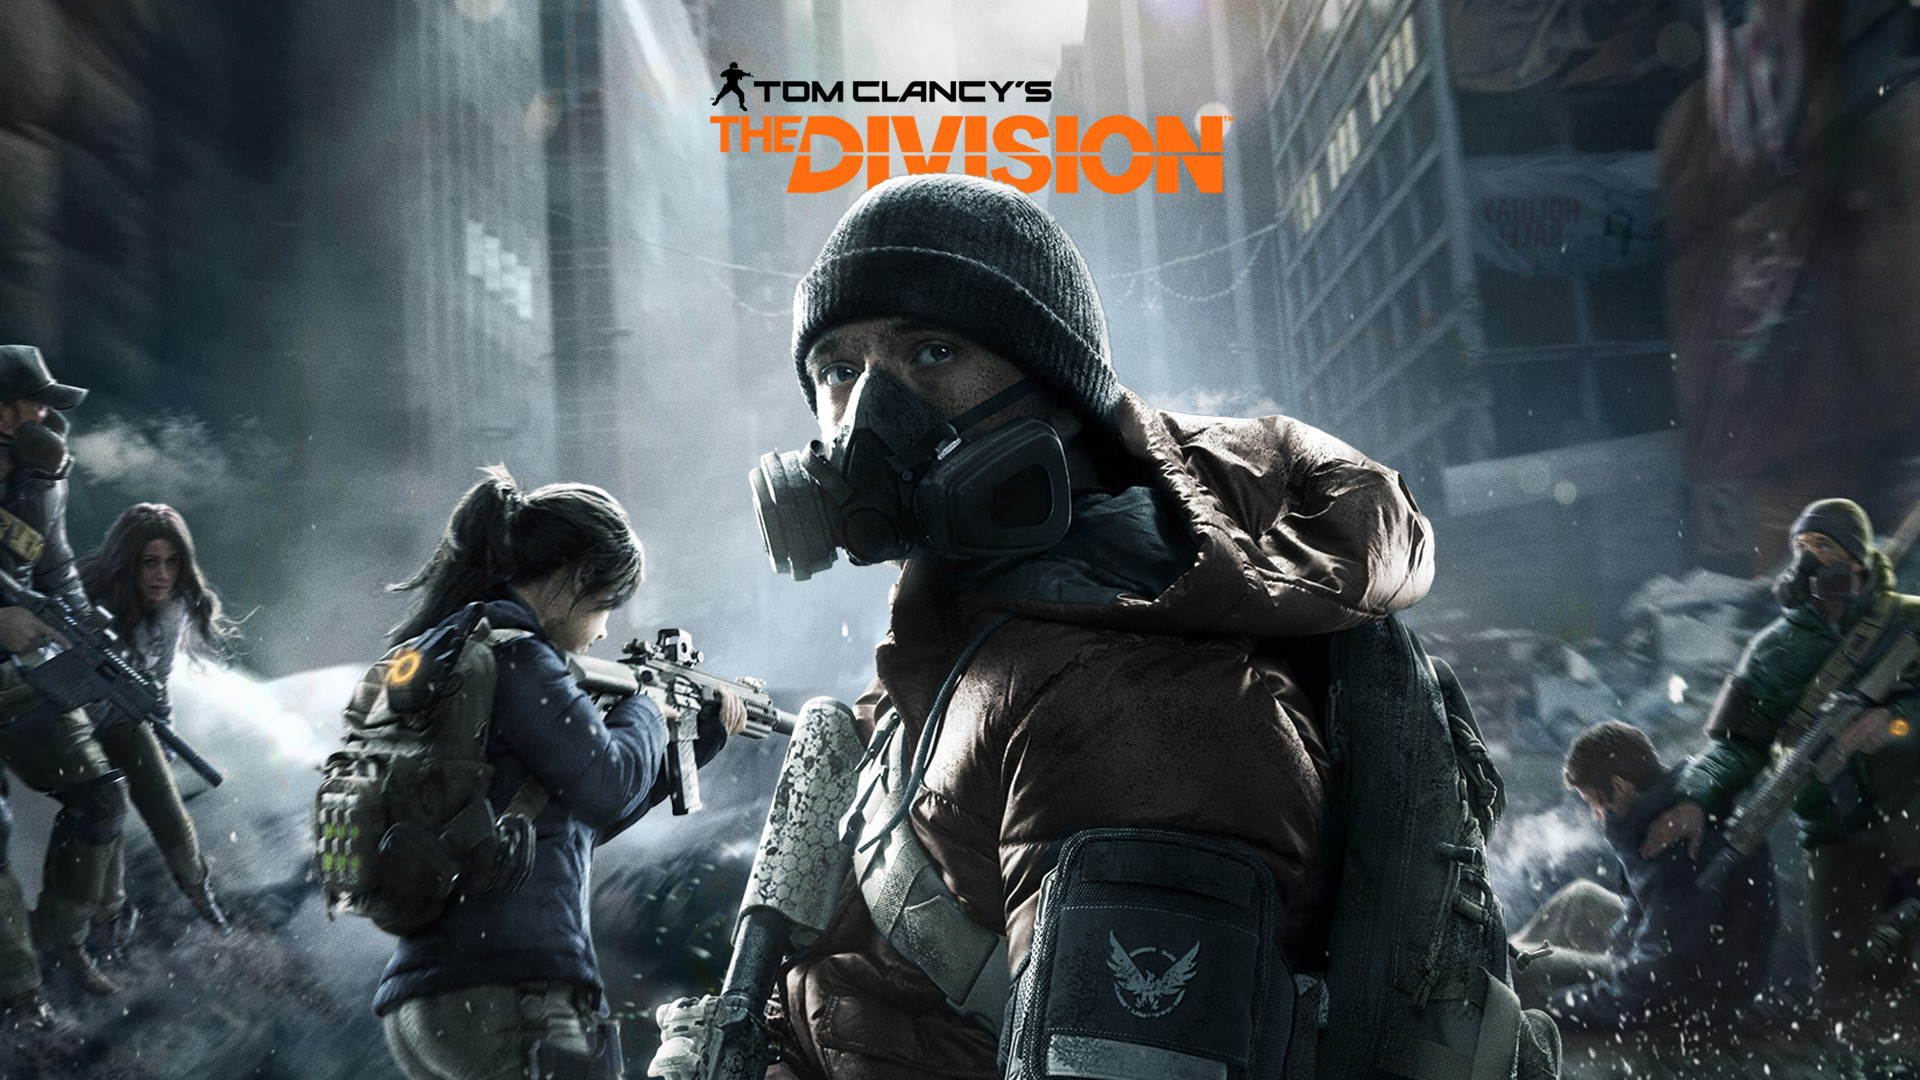 Tom Clancy's The Division HD Wallpaper